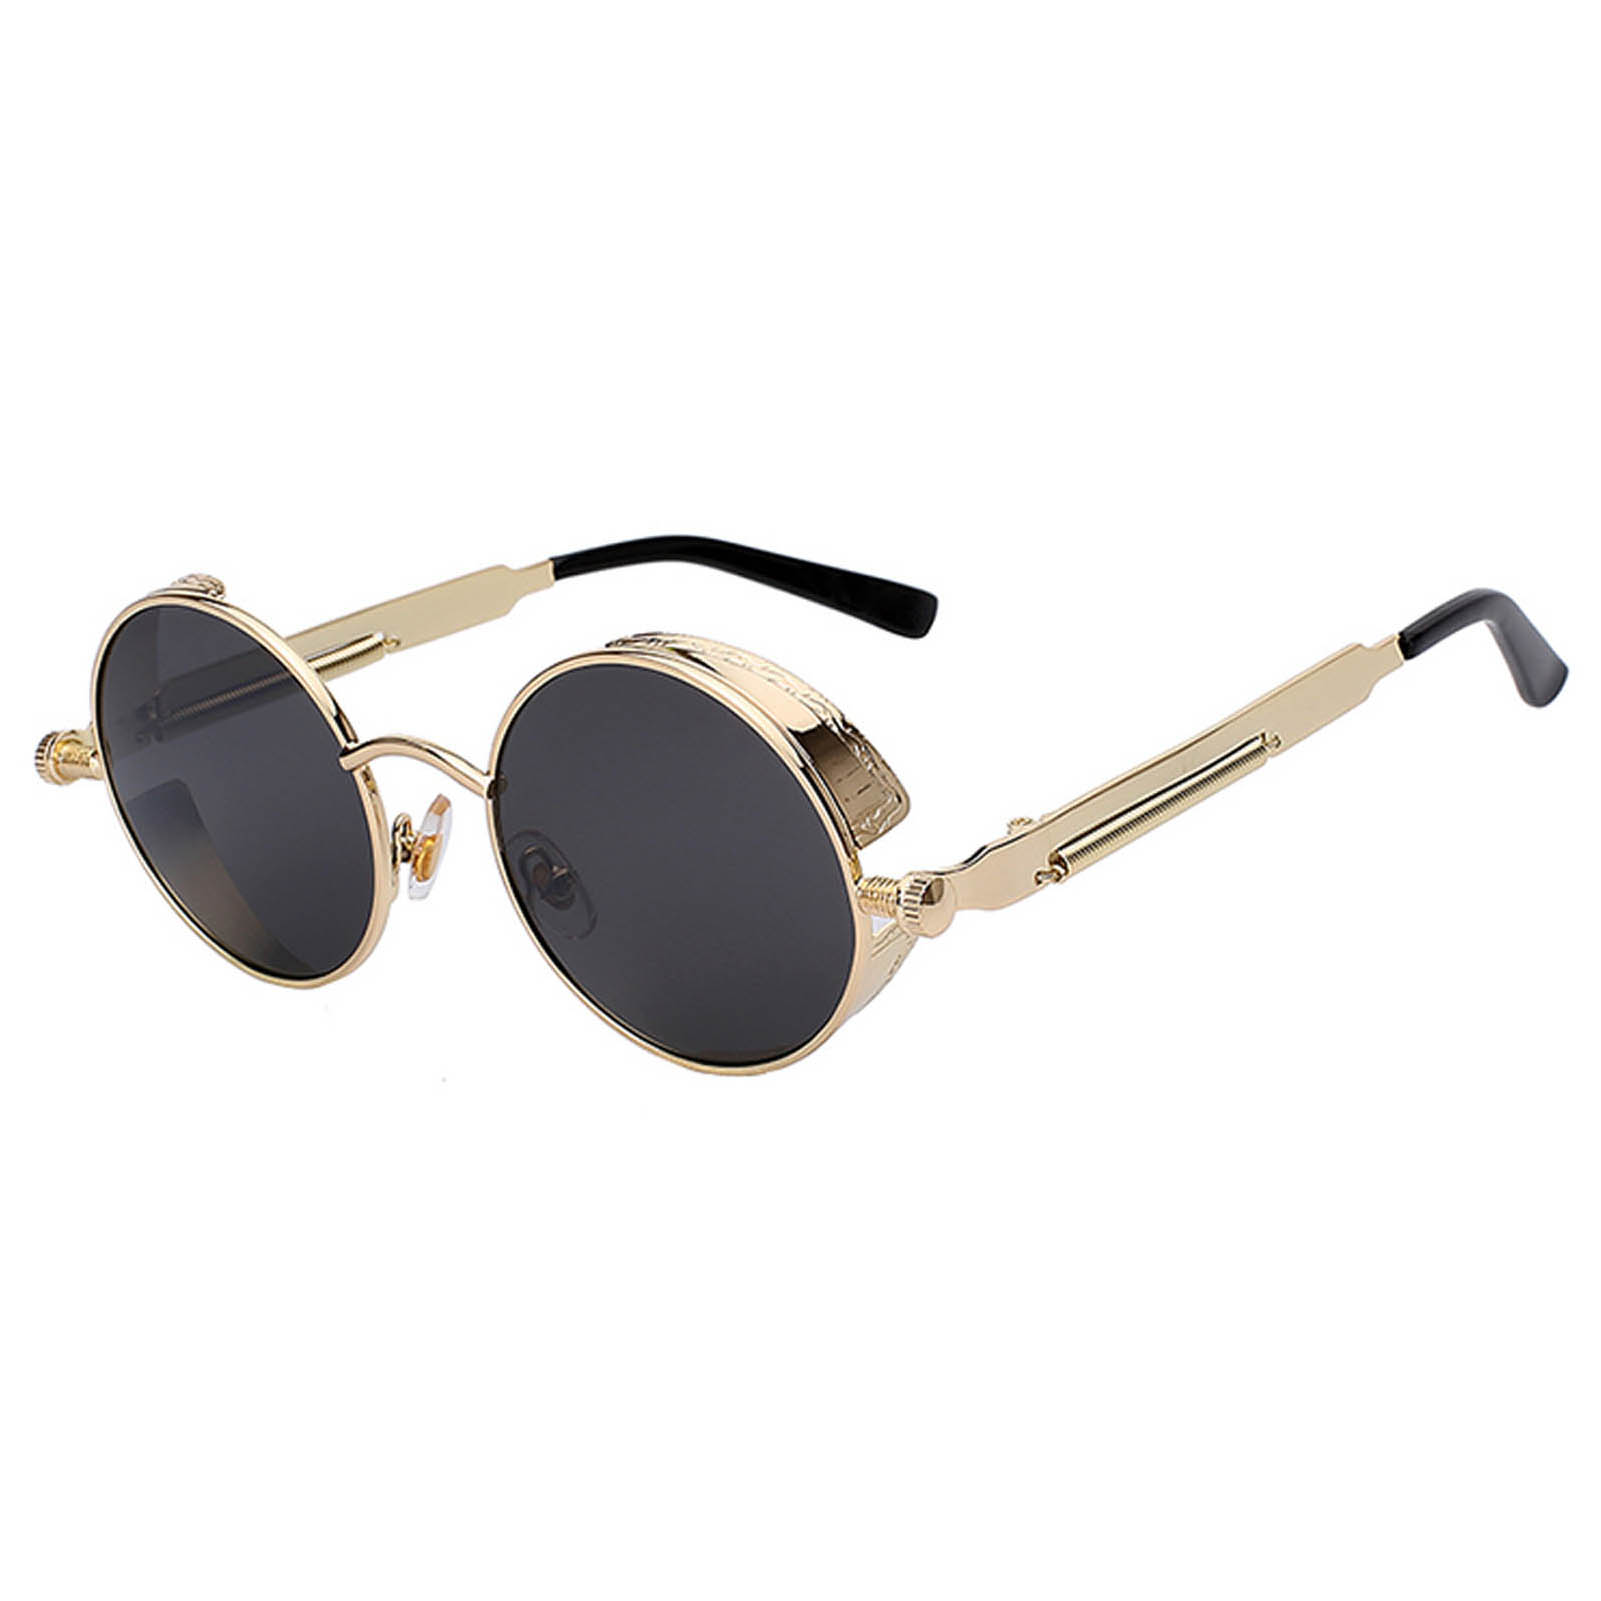 3df61ef12 060 Steampunk C1 Gothic Sunglasses Metal Round Circle Gold Frame Black Lens  One Pair